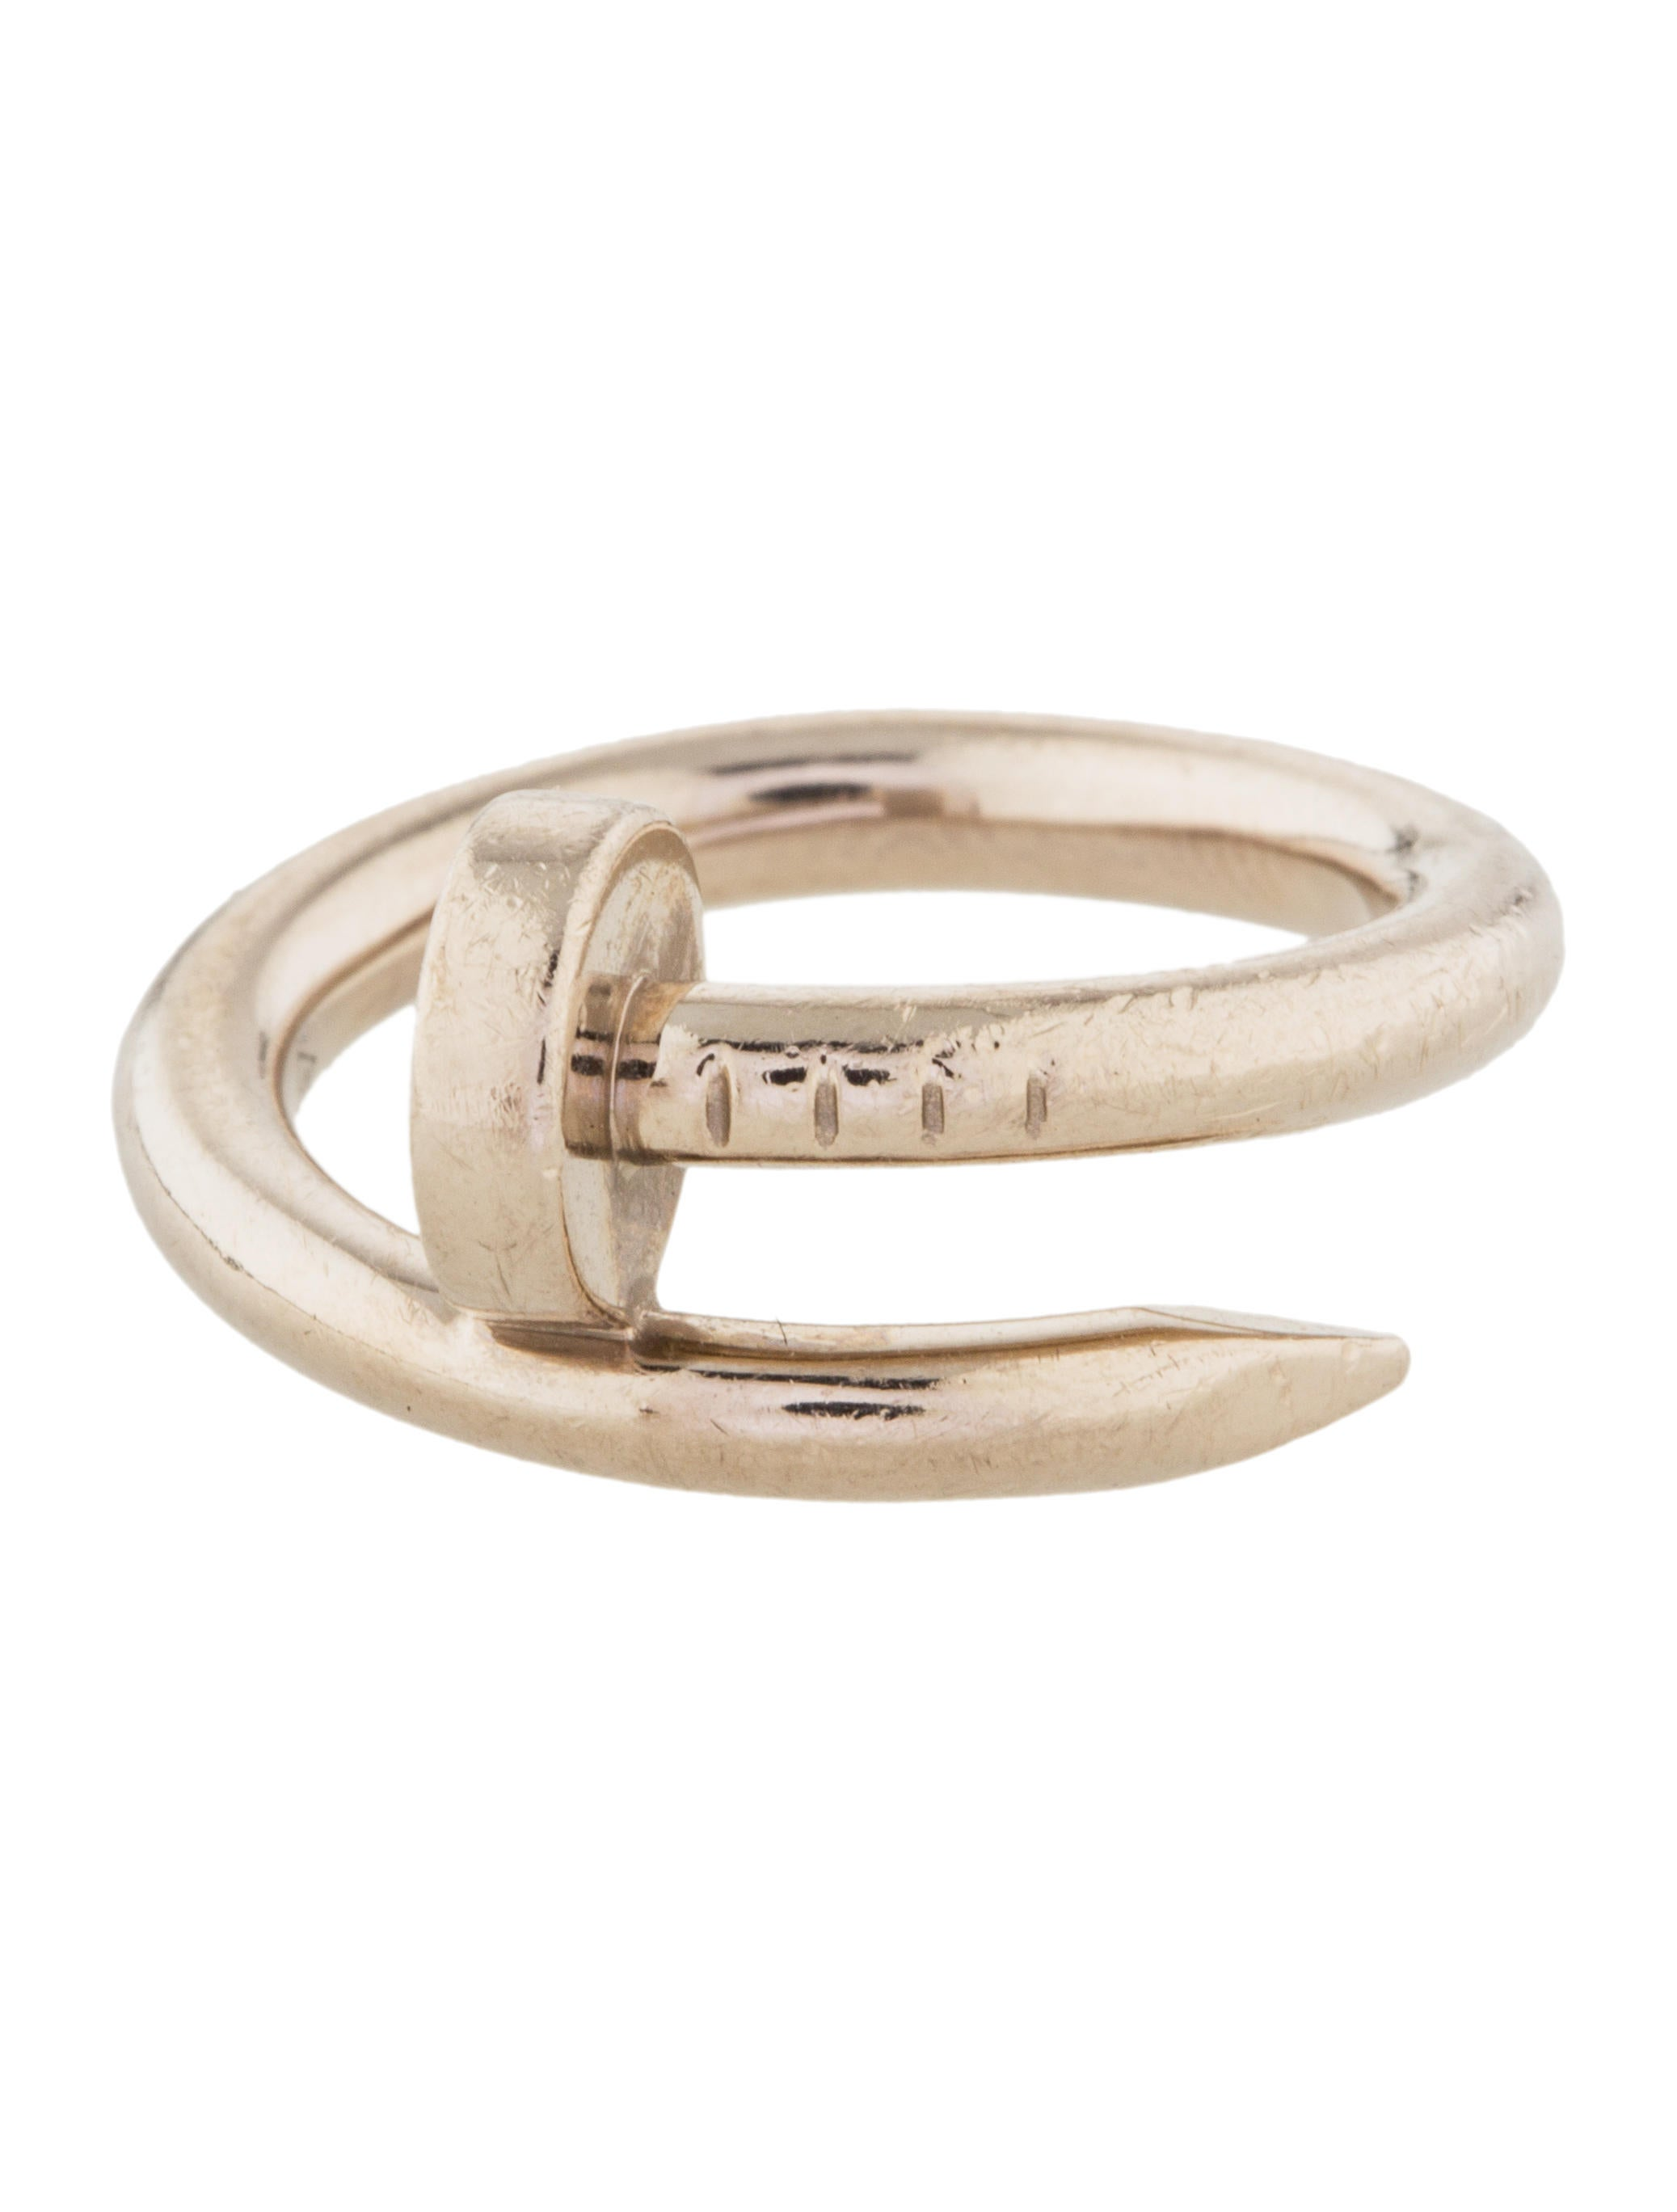 Cartier Juste Un Clou Ring - Rings - CRT32247 | The RealReal